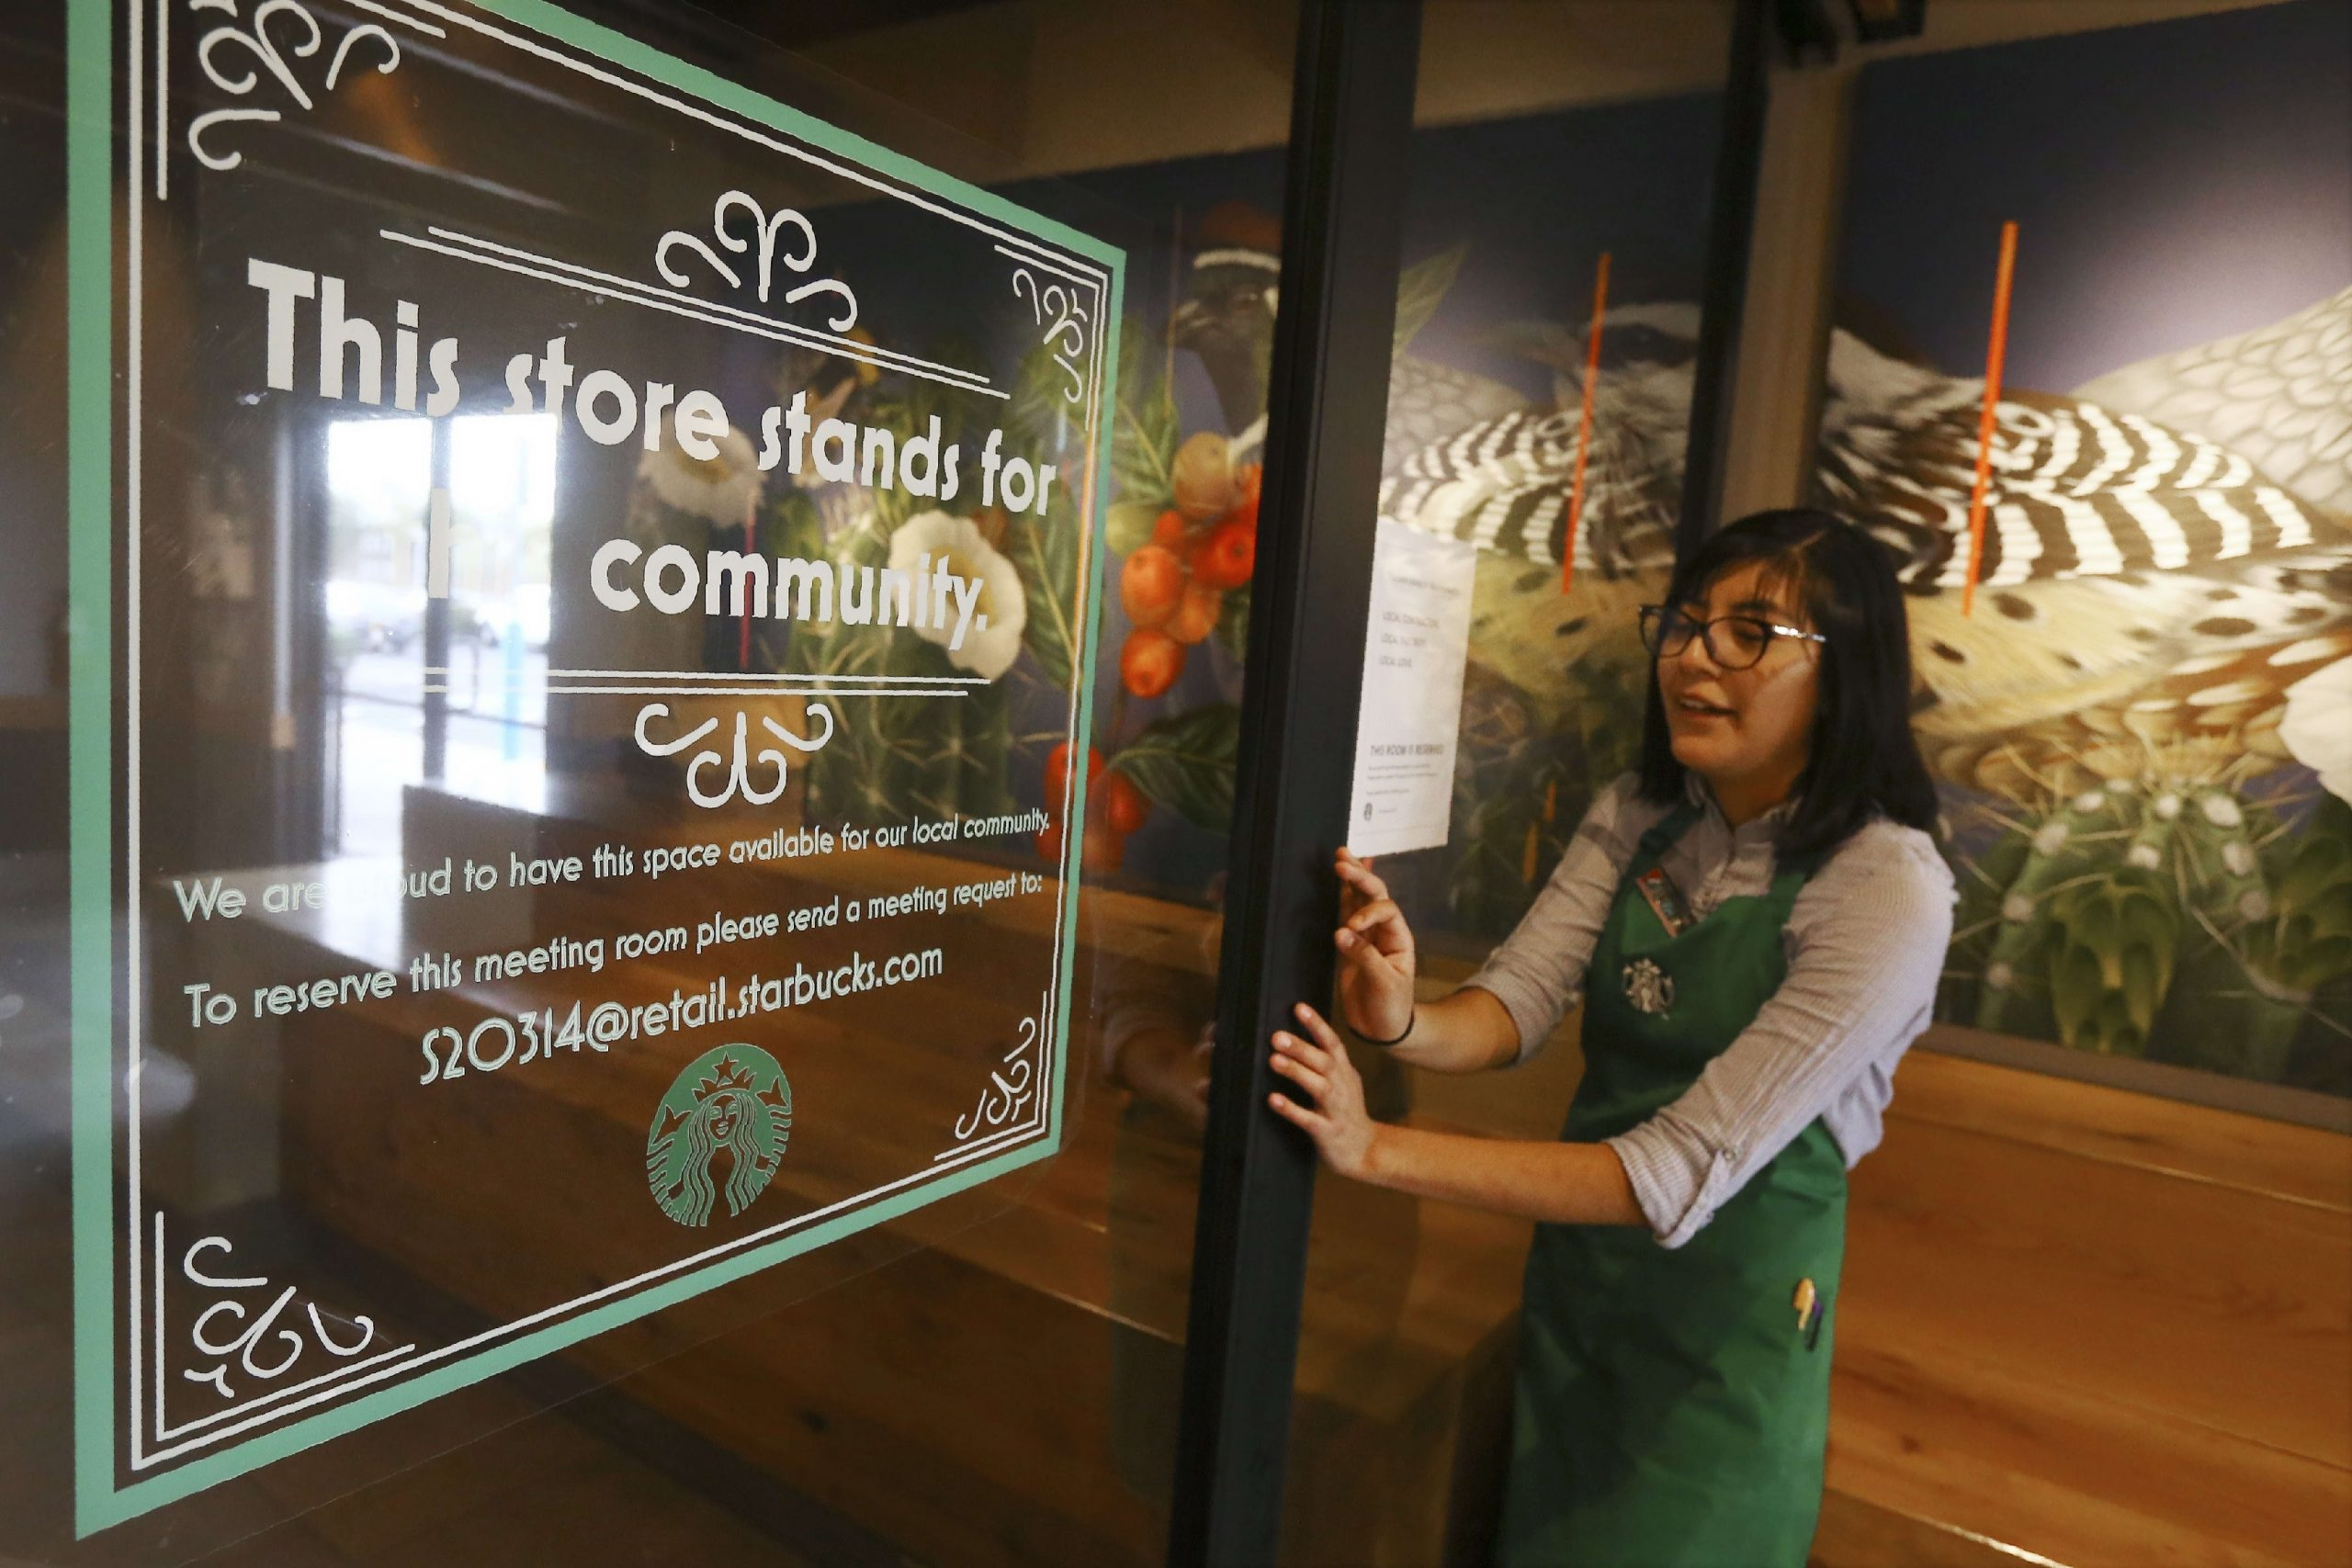 Starbucks, Home Of The $4 Latte, Is Moving Into Poor Areas photo